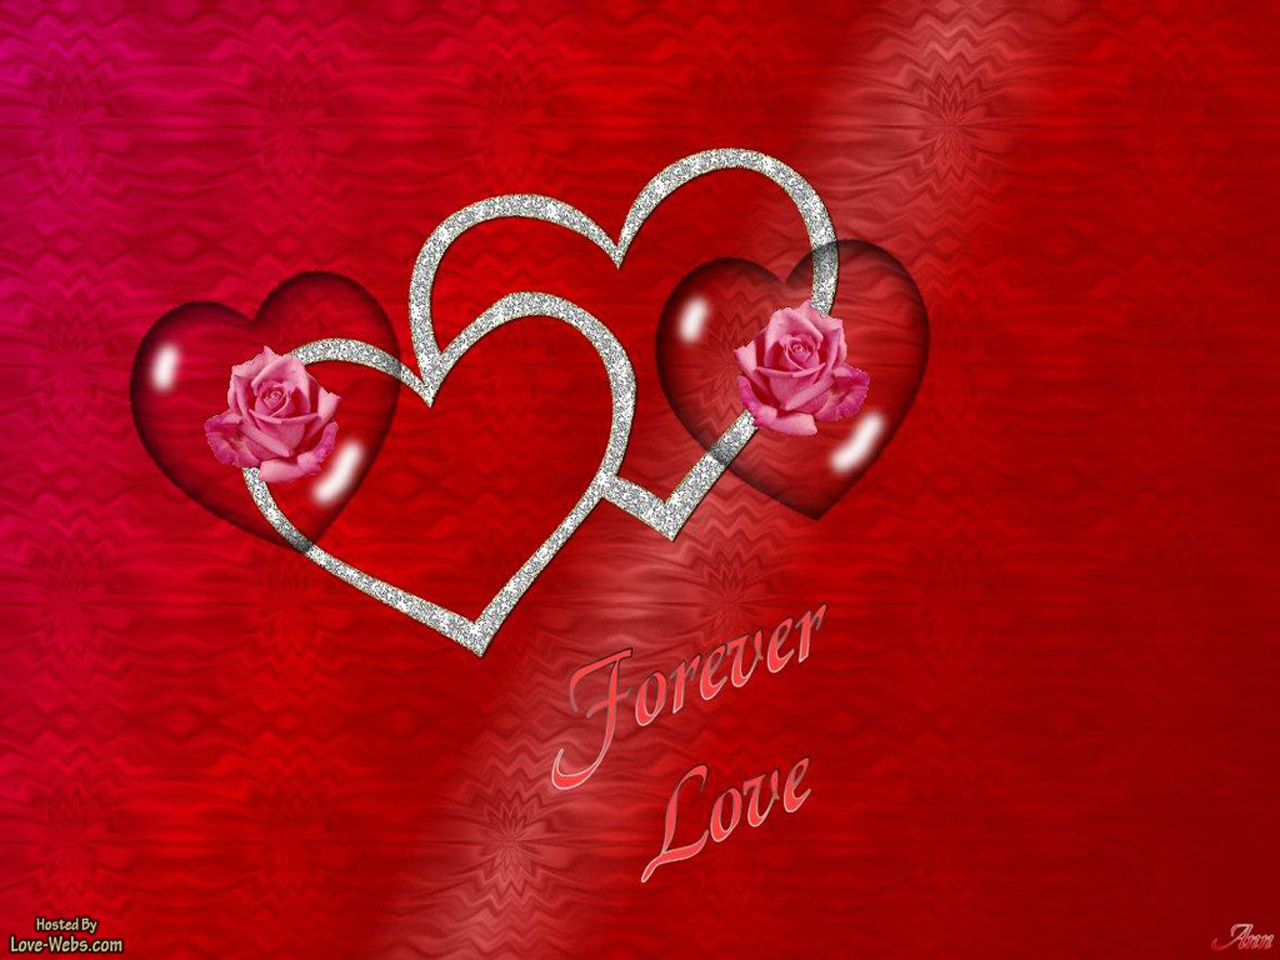 Love Wallpaper With My Name : All In One computer, Mobiles, Software, Keys, Islamic Wallpapers, Others Wallpapers, Videos ...